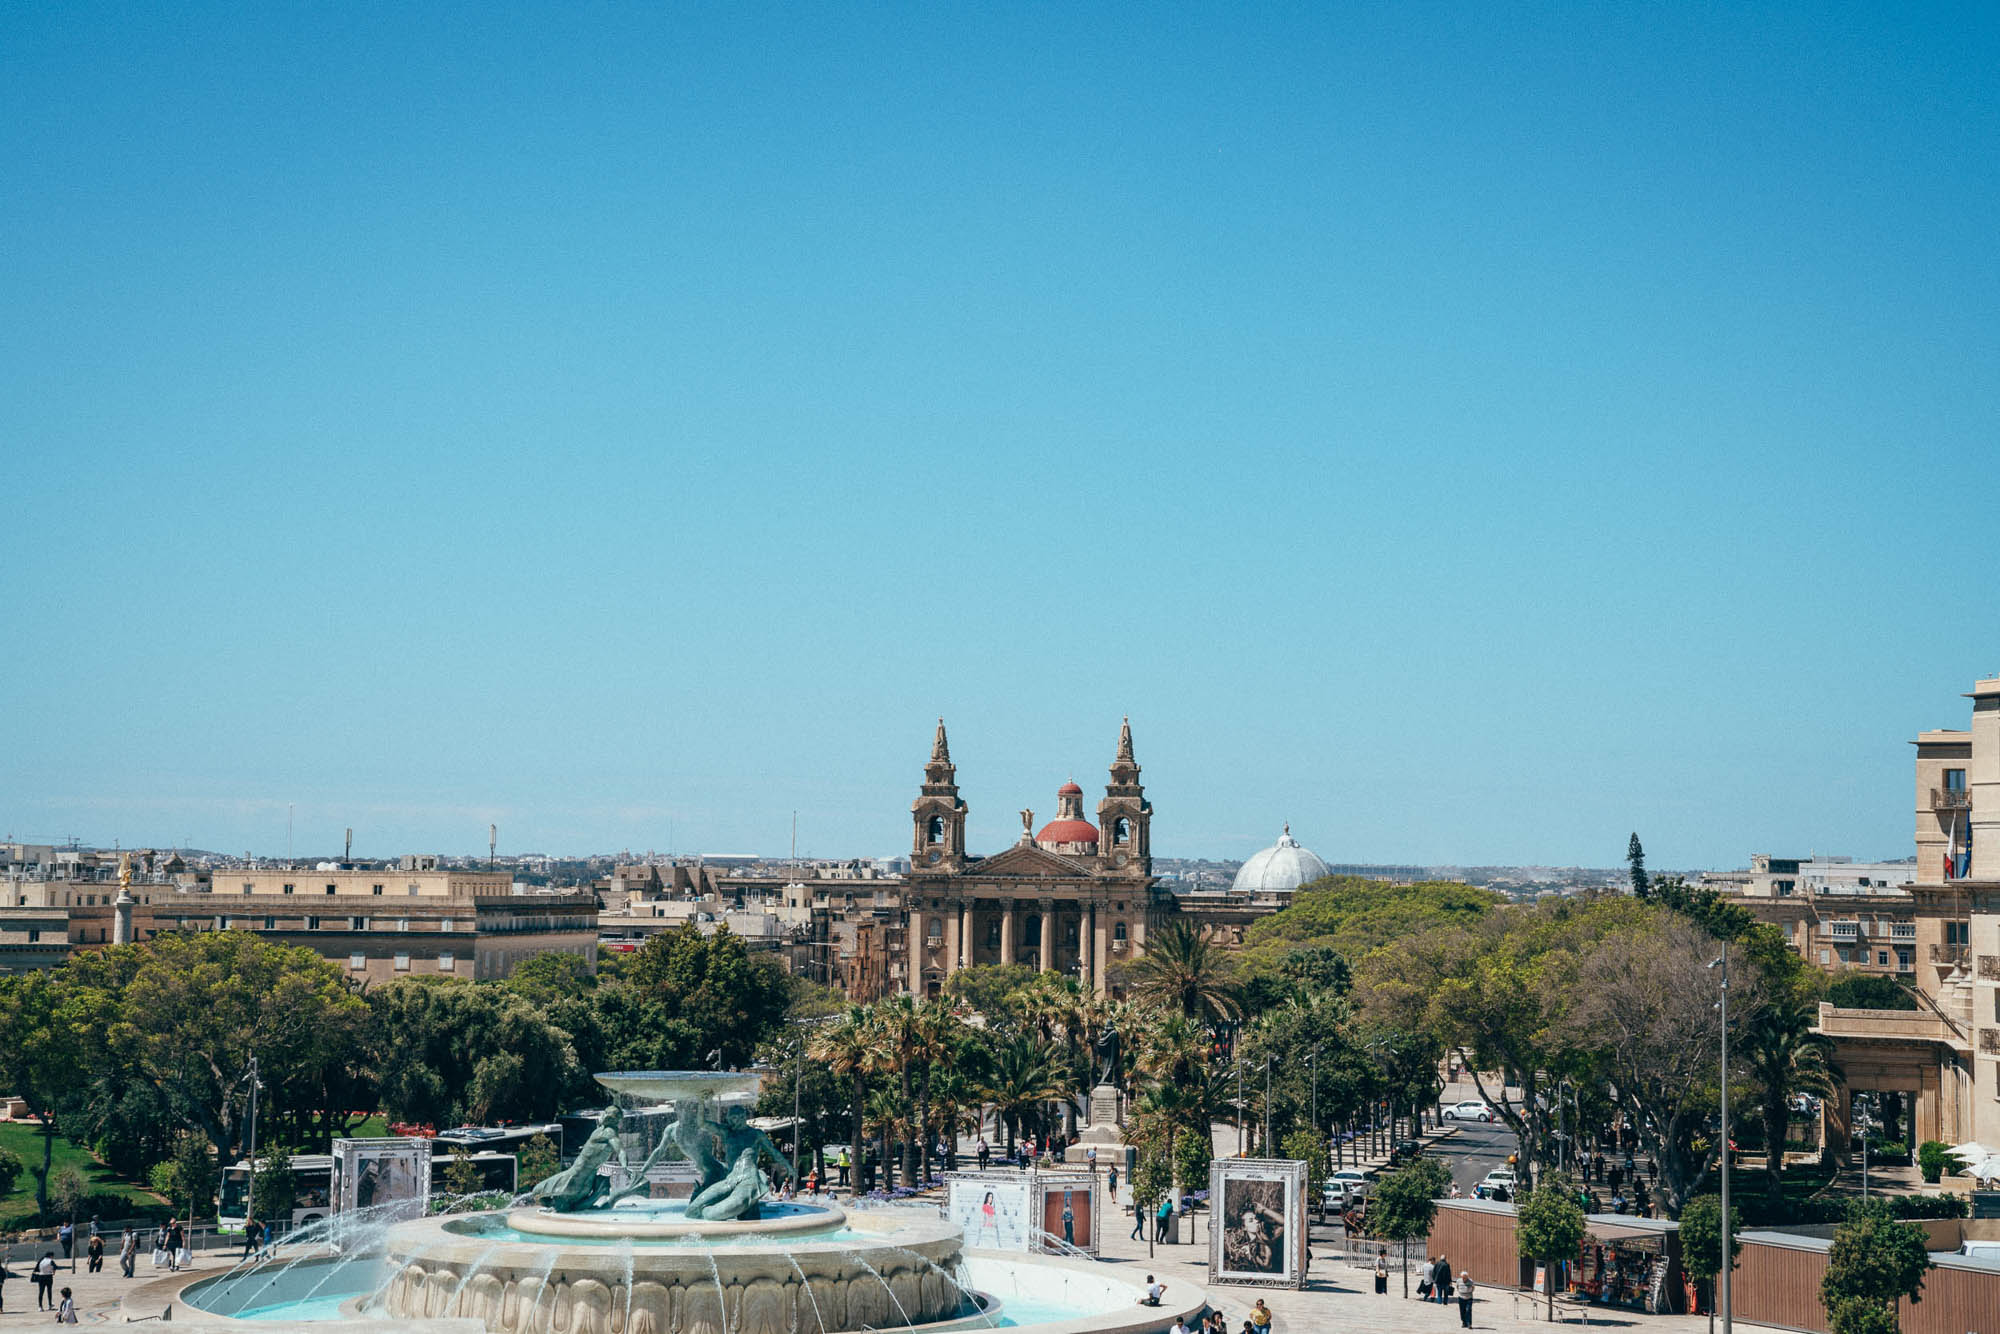 The Tritons Fountain is a fountain located on the periphery of the City Gate of Valletta, Republic of Malta, Europe